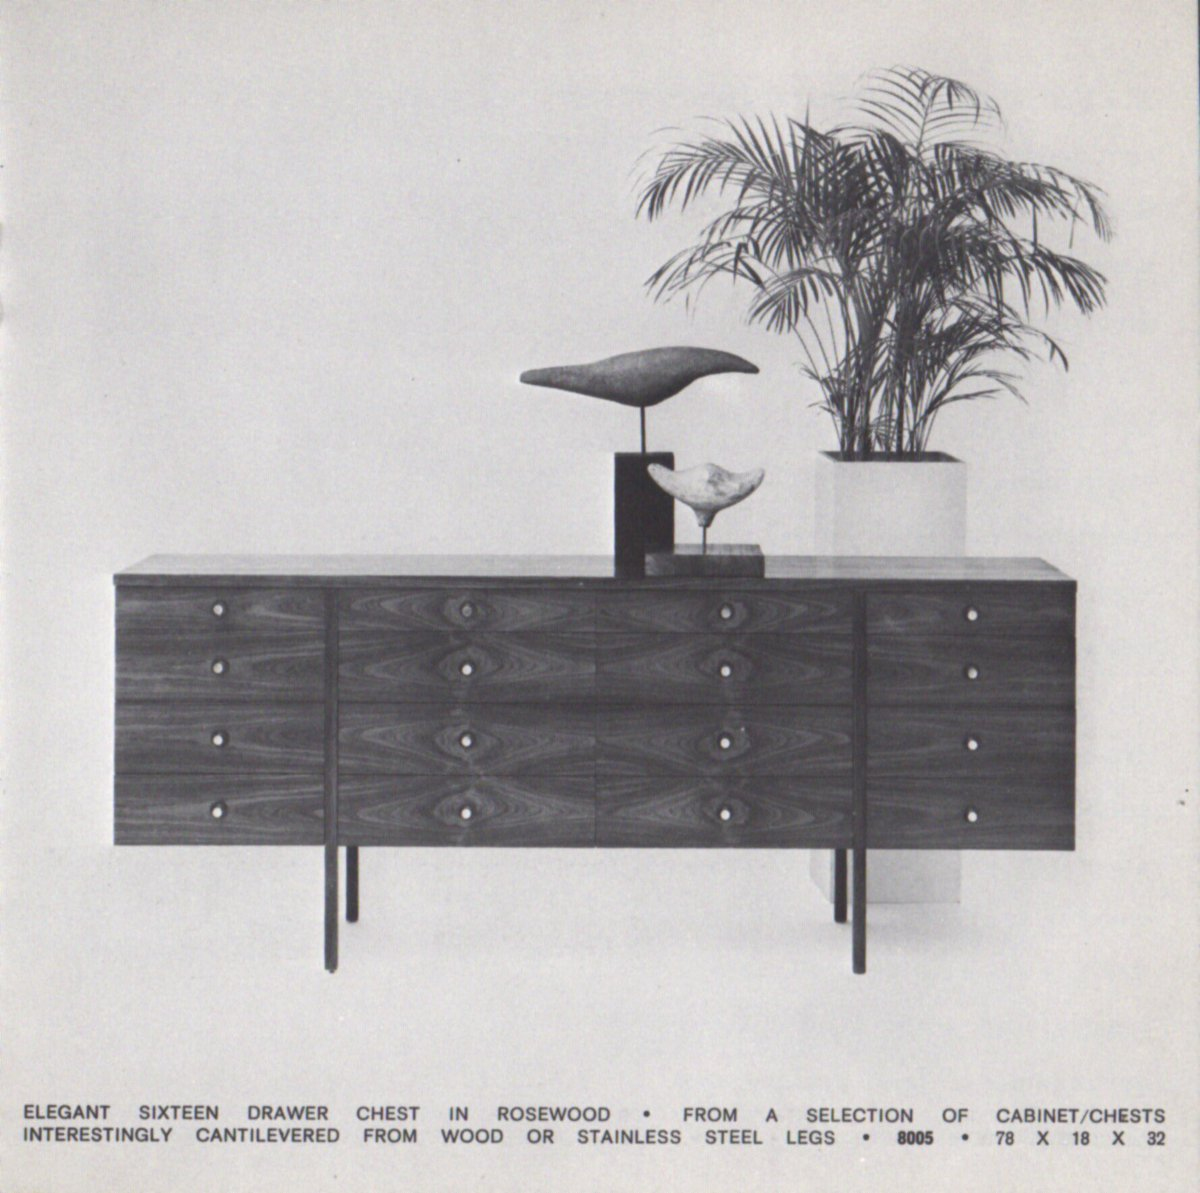 #PaulMcCobb Cantilevered Chest From His Final Collection In  1965pic.twitter.com/0iXCZC6yB5